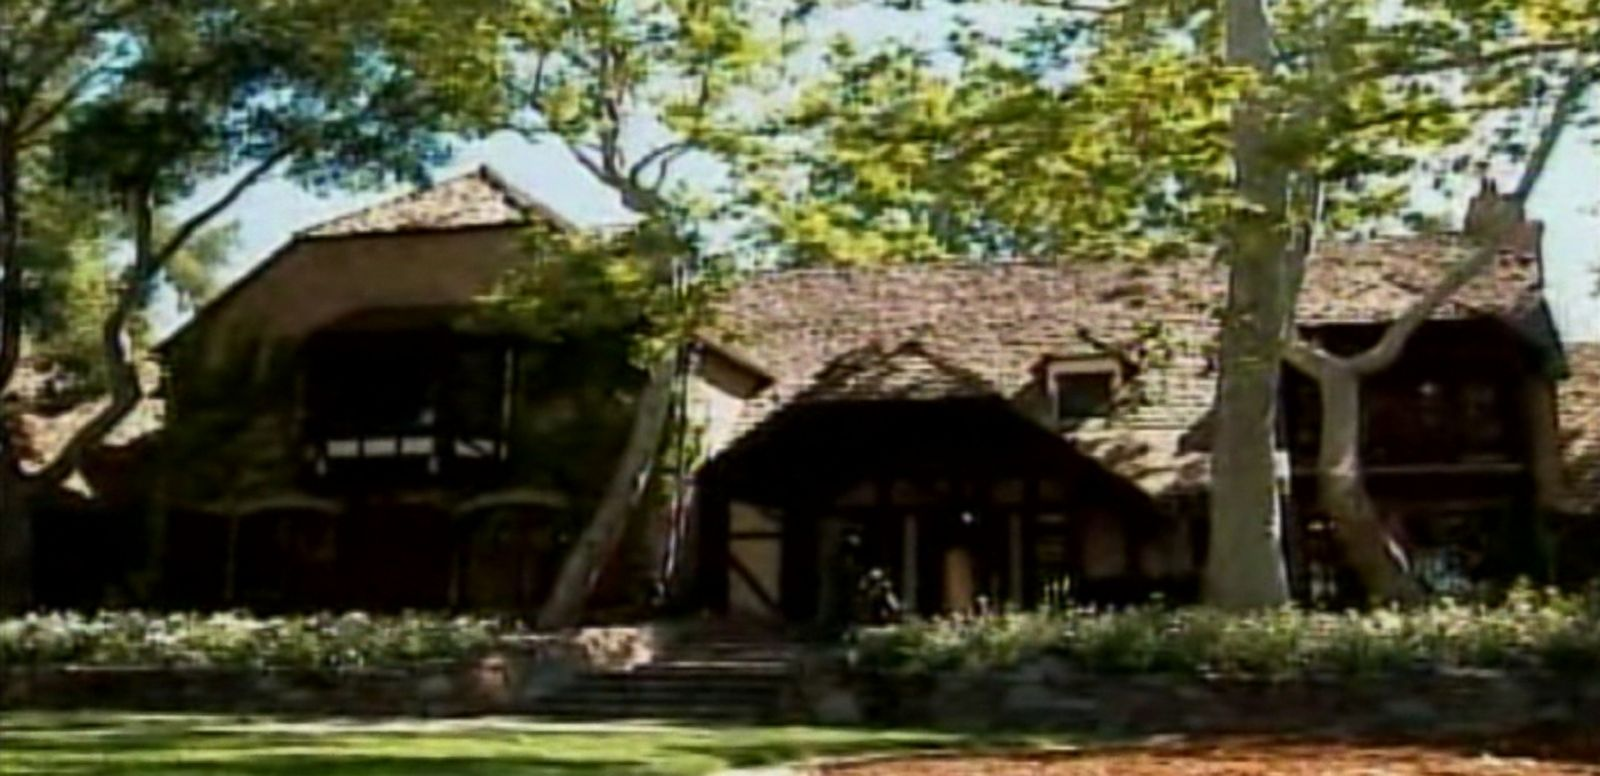 VIDEO: The California ranch once owned by Michael Jackson is on the market for $100 million.